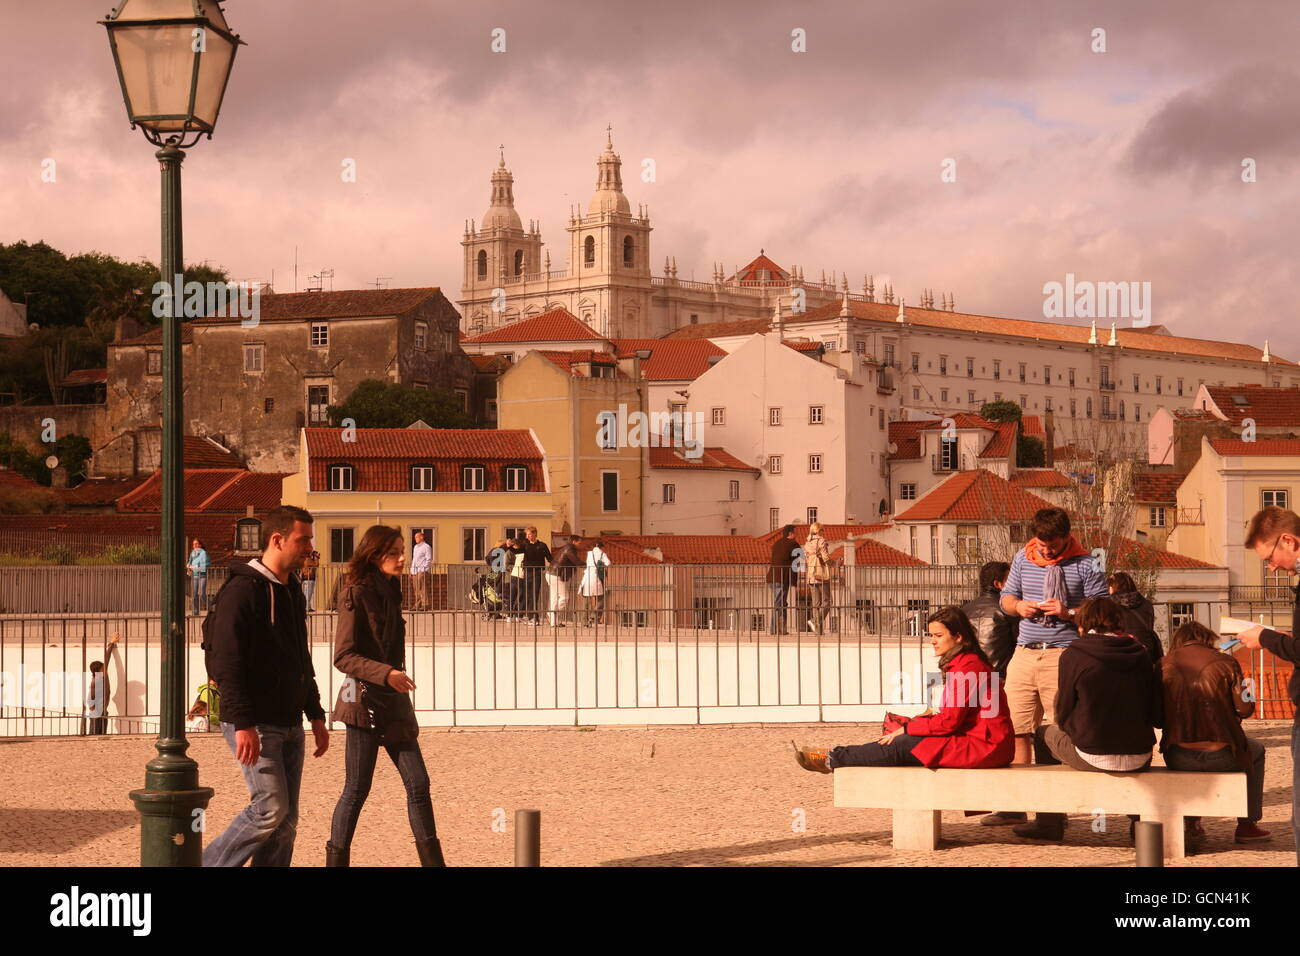 the old town of Alfama in the city centre of Lisbon in Portugal in Europe. - Stock Image